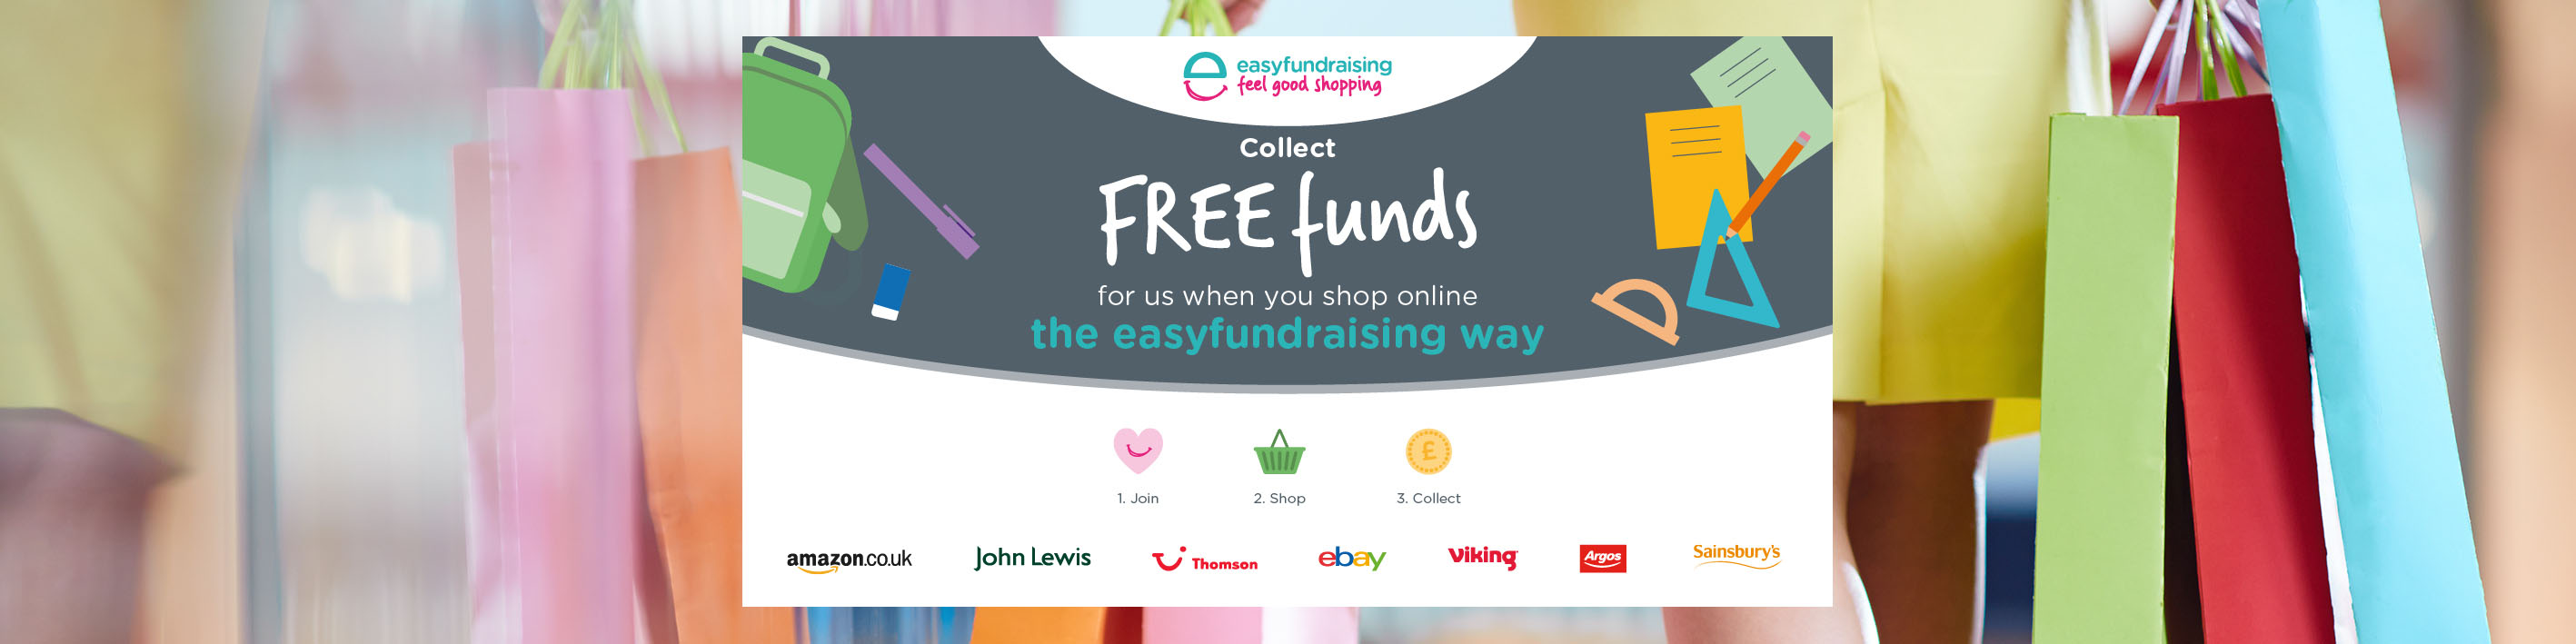 home-slider-screen-easyfundraising